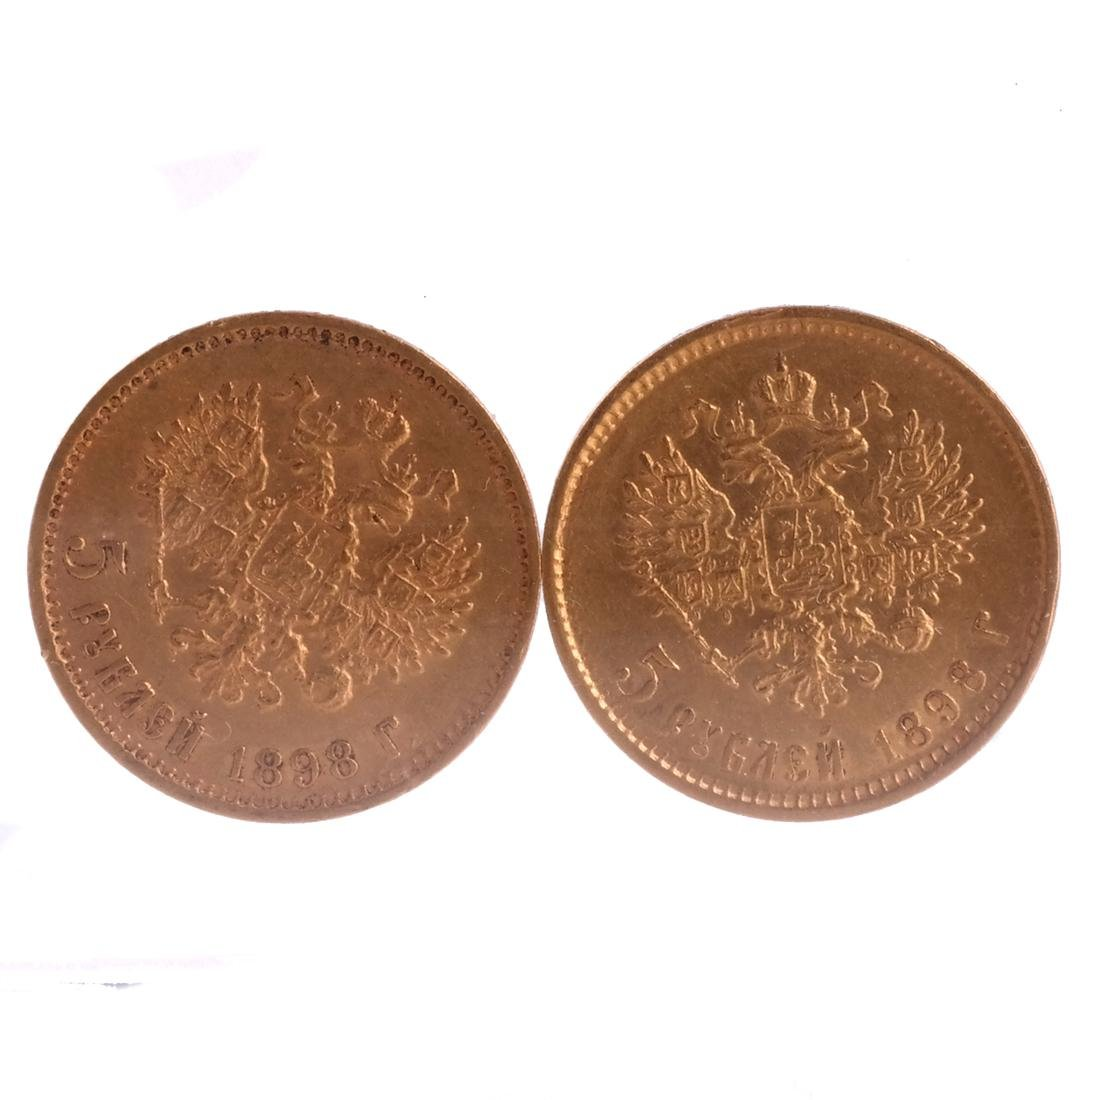 2 Russian 5-Ruble gold coins, 1898 - 2